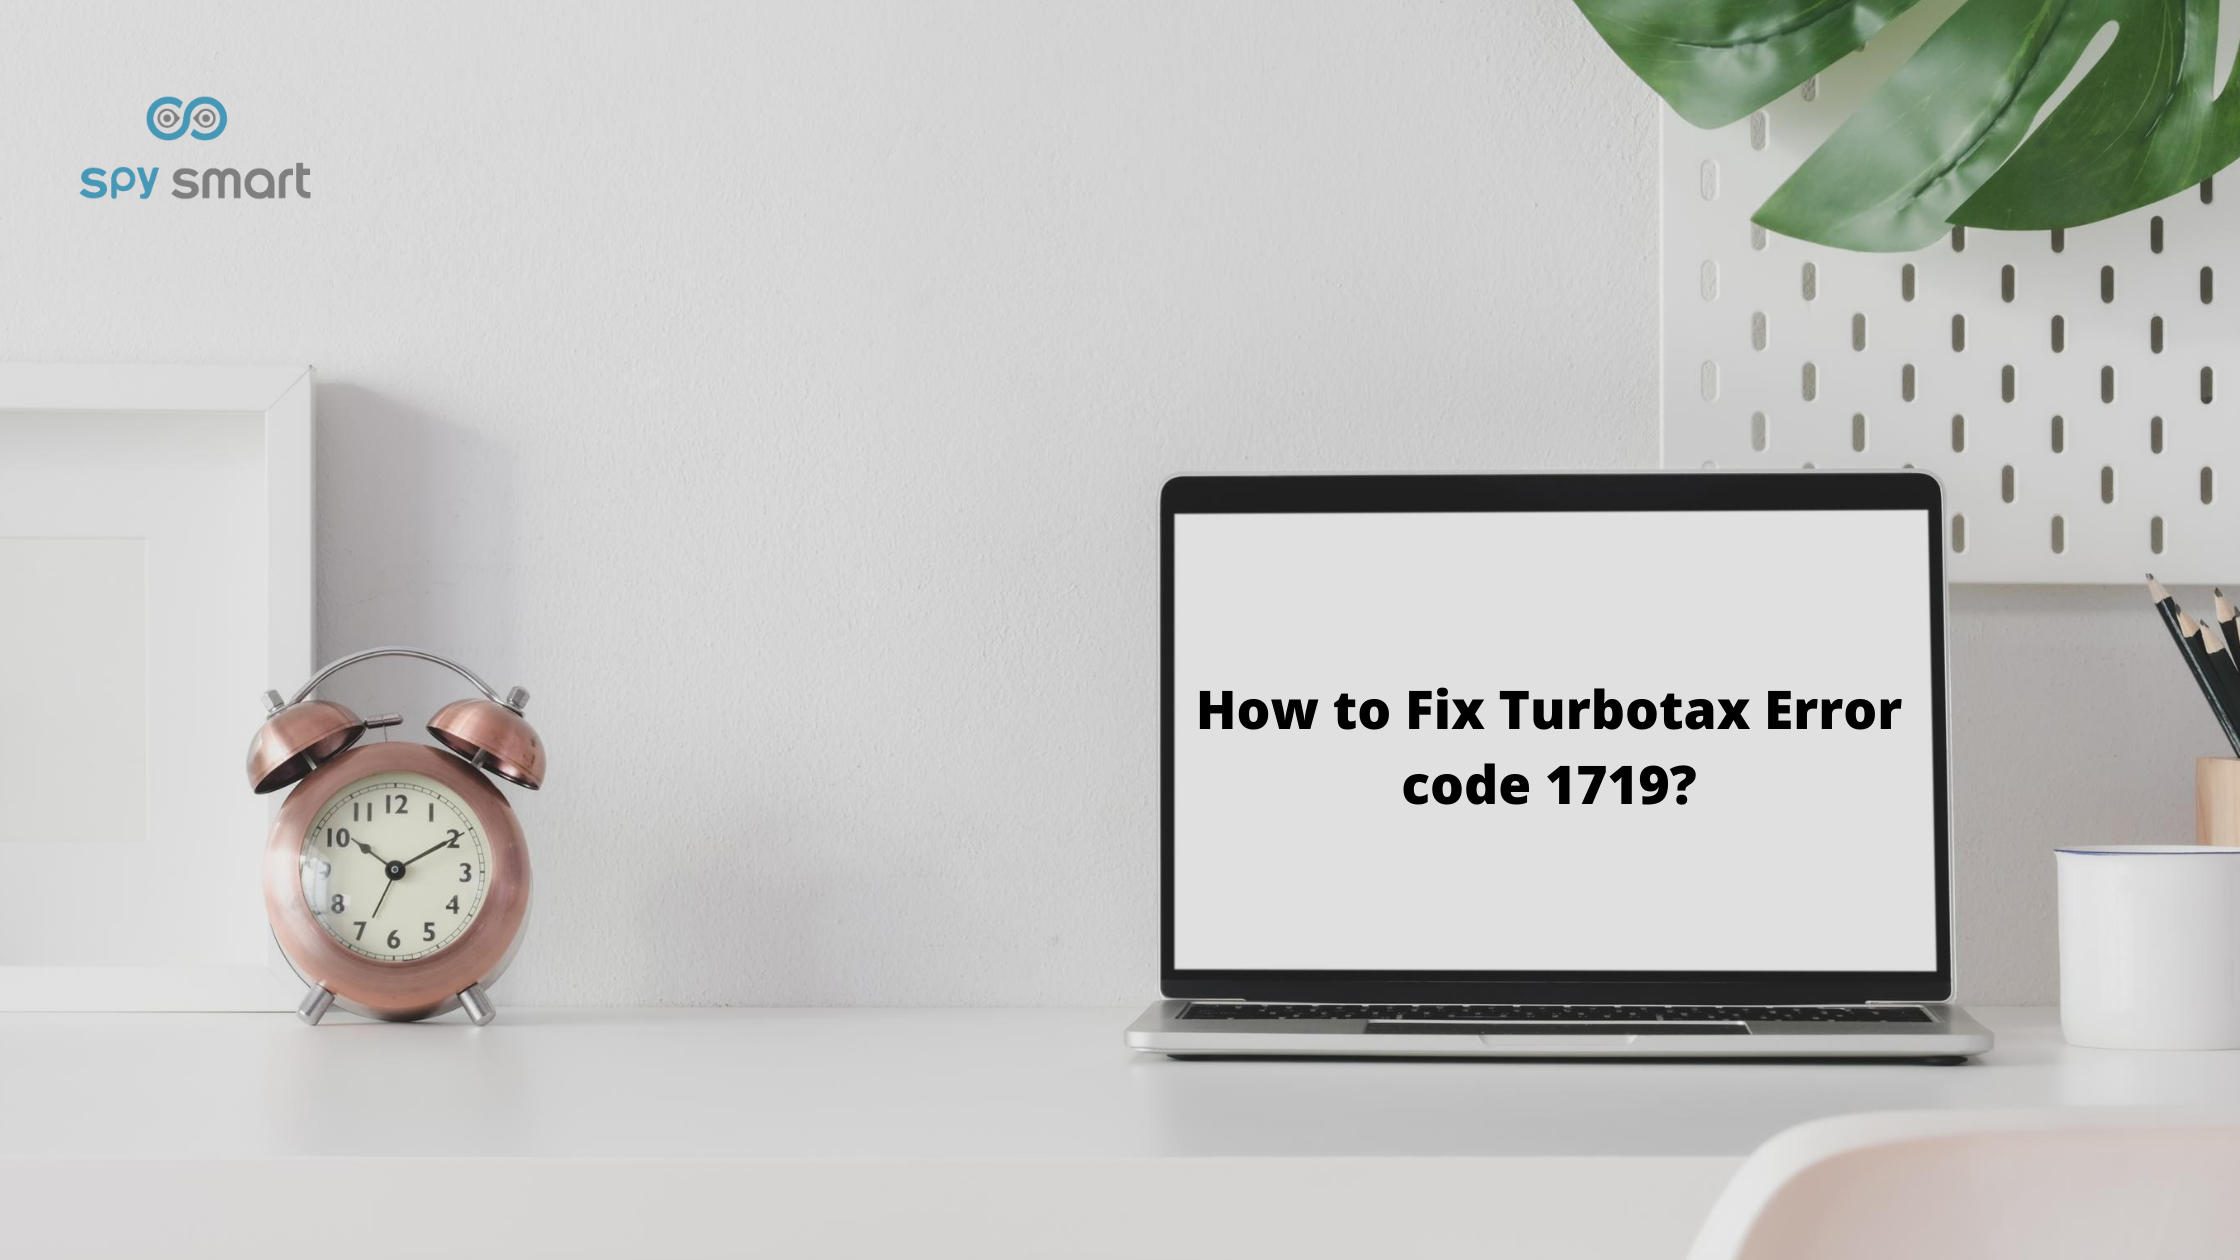 How To Fix Turbotax Error code 1719